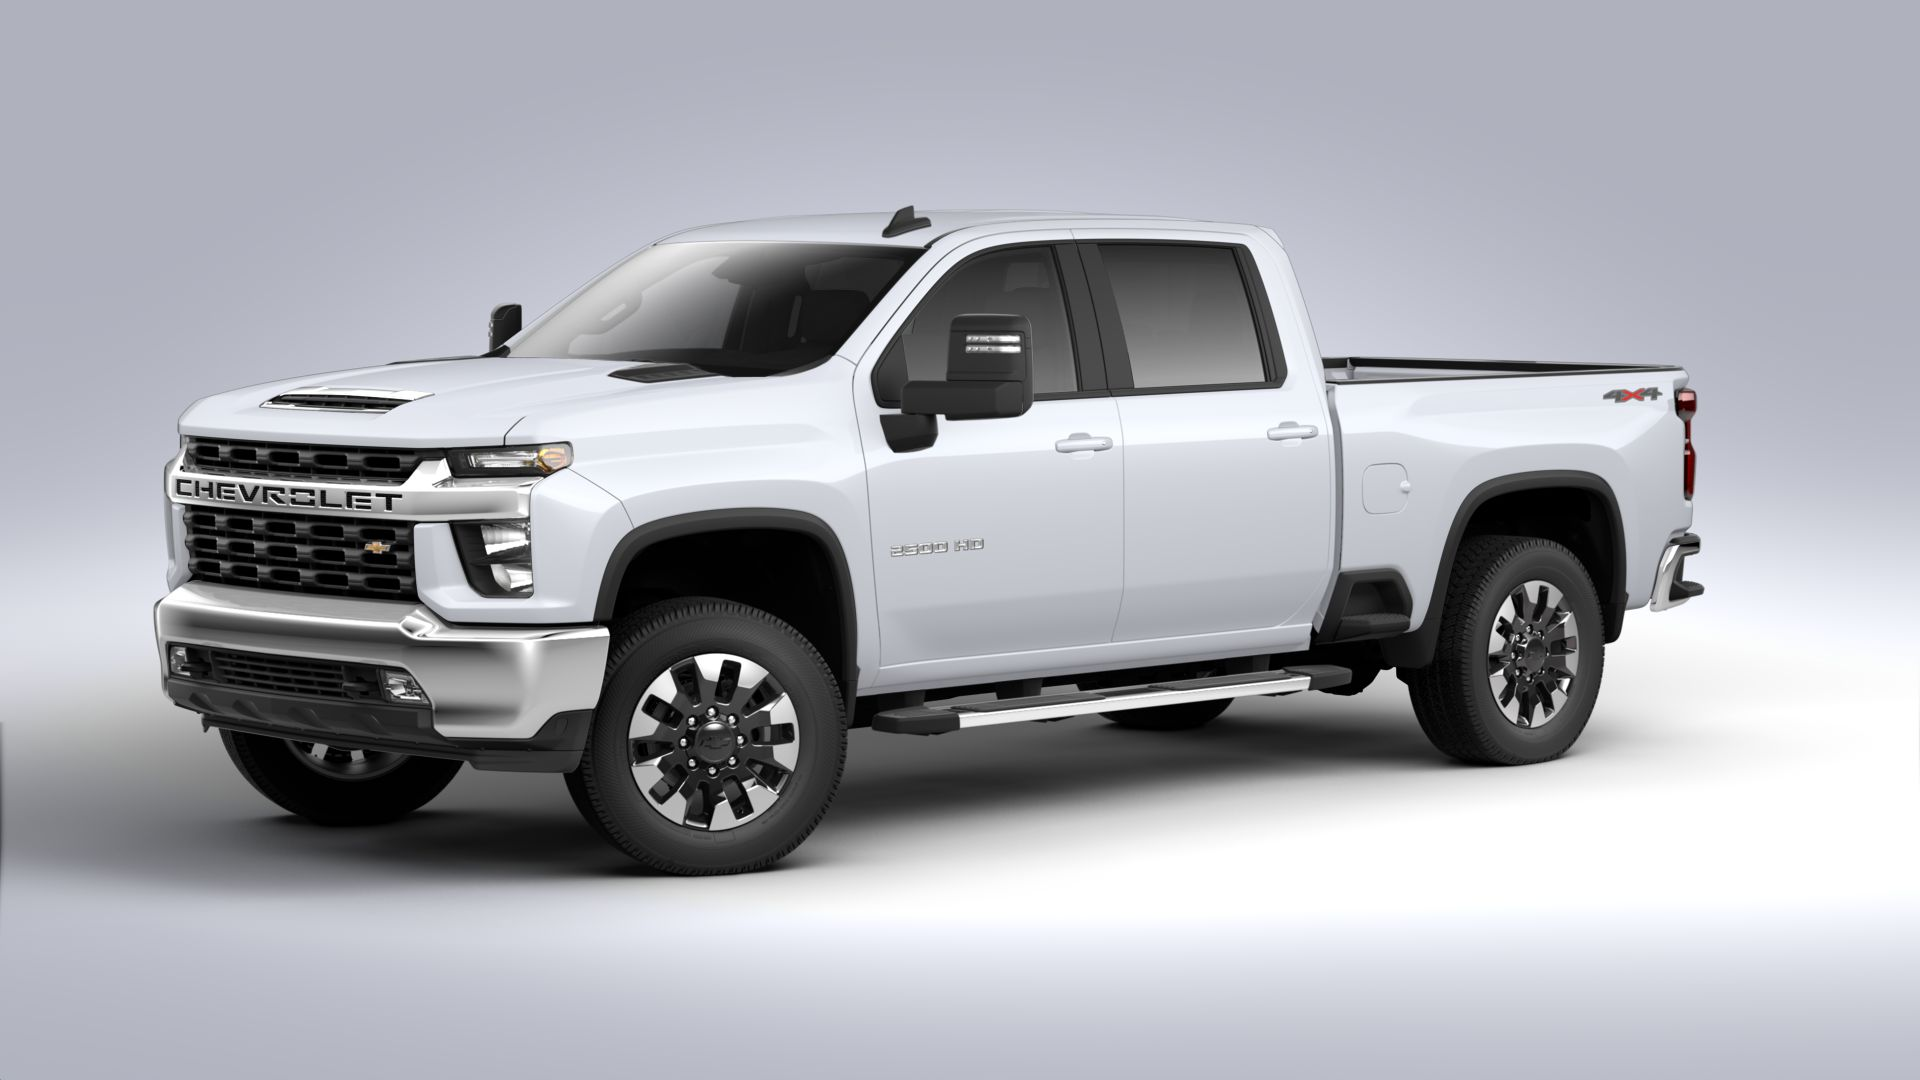 New 2020 Chevrolet Silverado 2500 HD LT